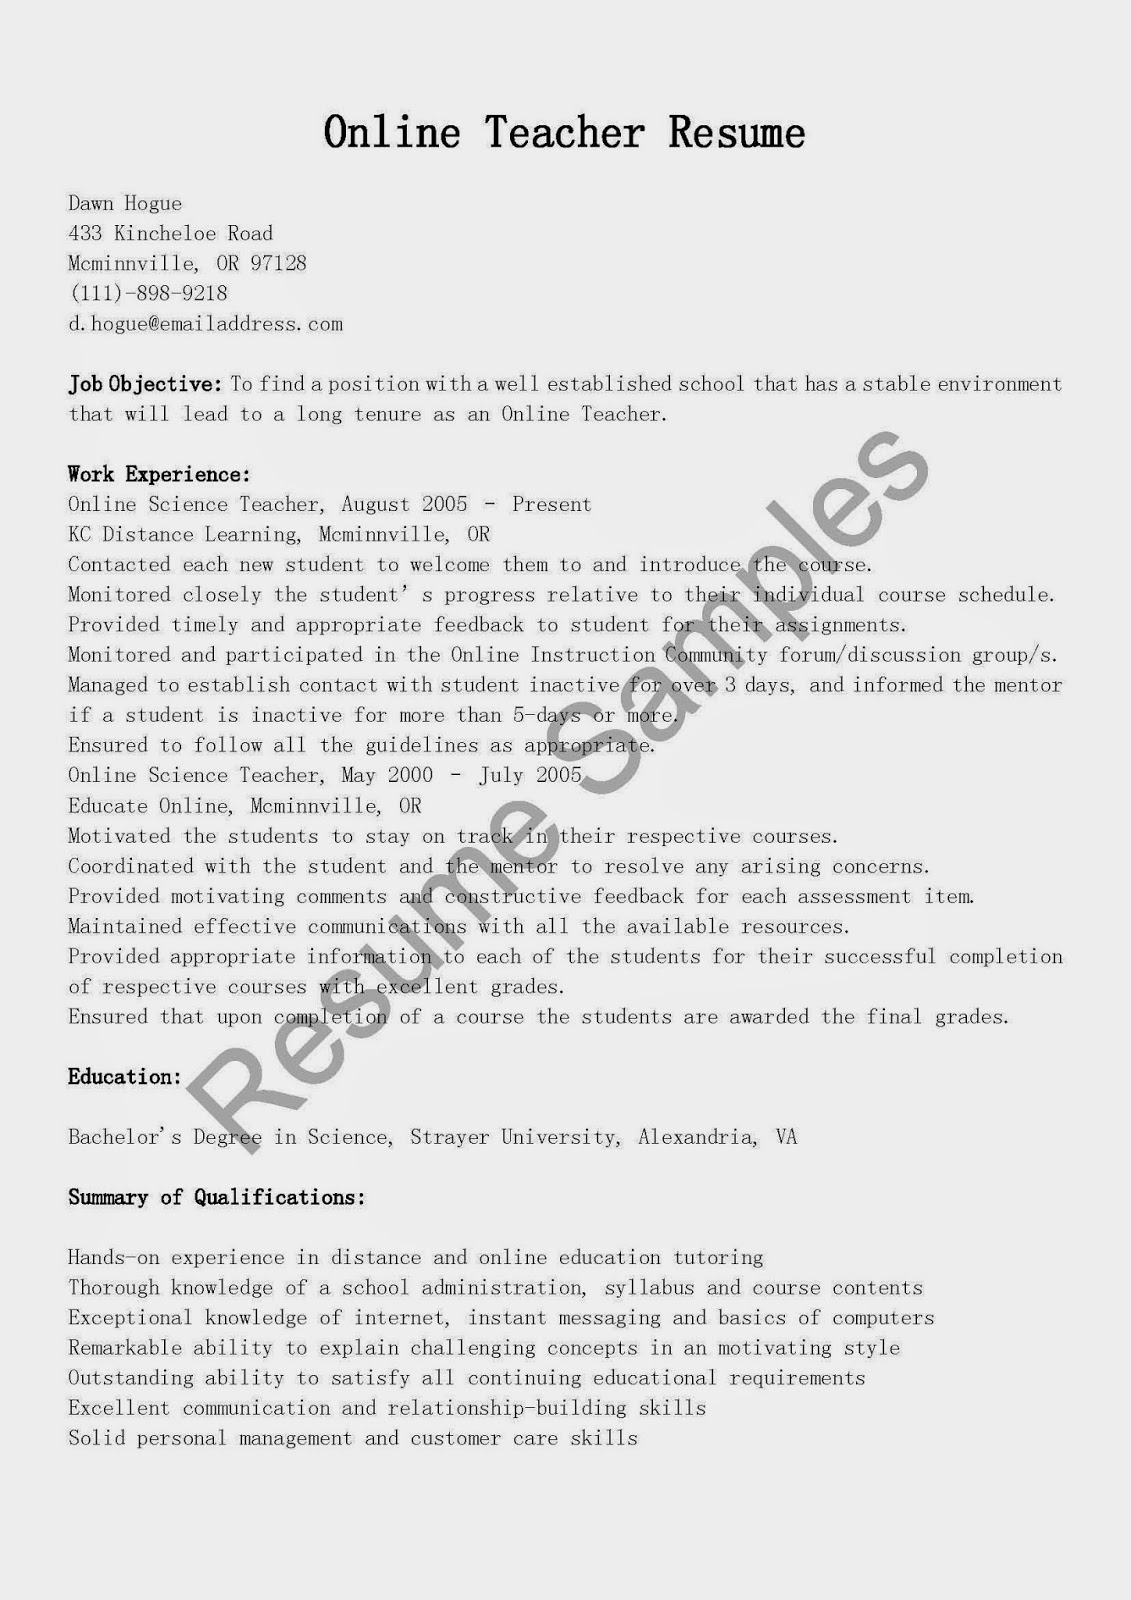 resume samples  online teacher resume sample